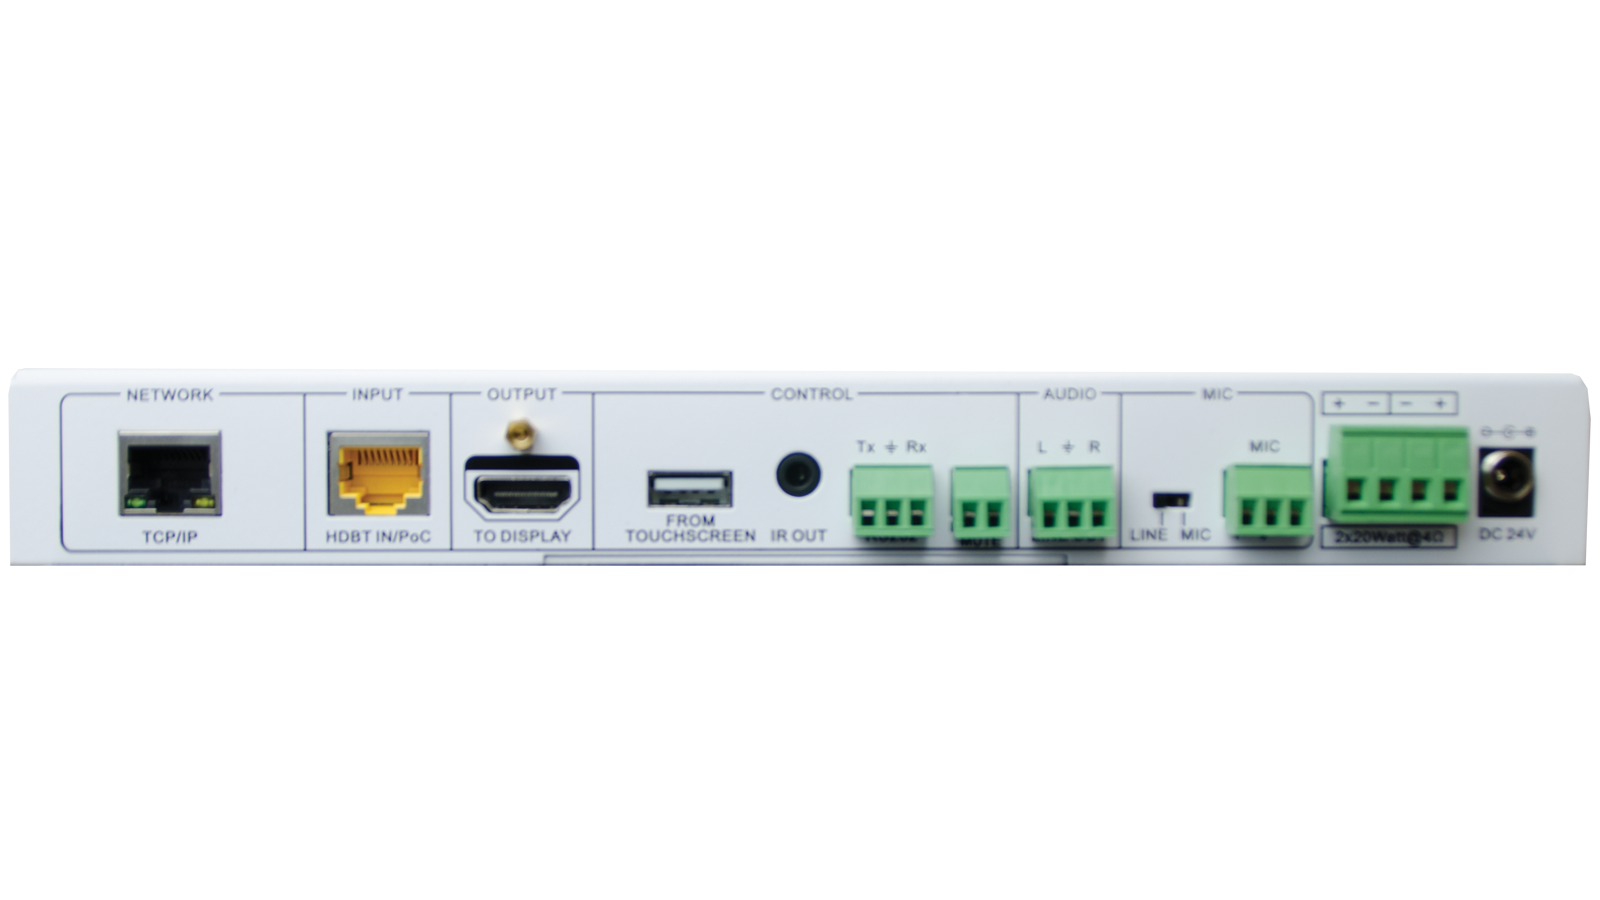 Edu Kit 001 Hdmi Av Distribution And Control System Image Of Home Command Center Structured Wiring Panel With 1x8 Coax